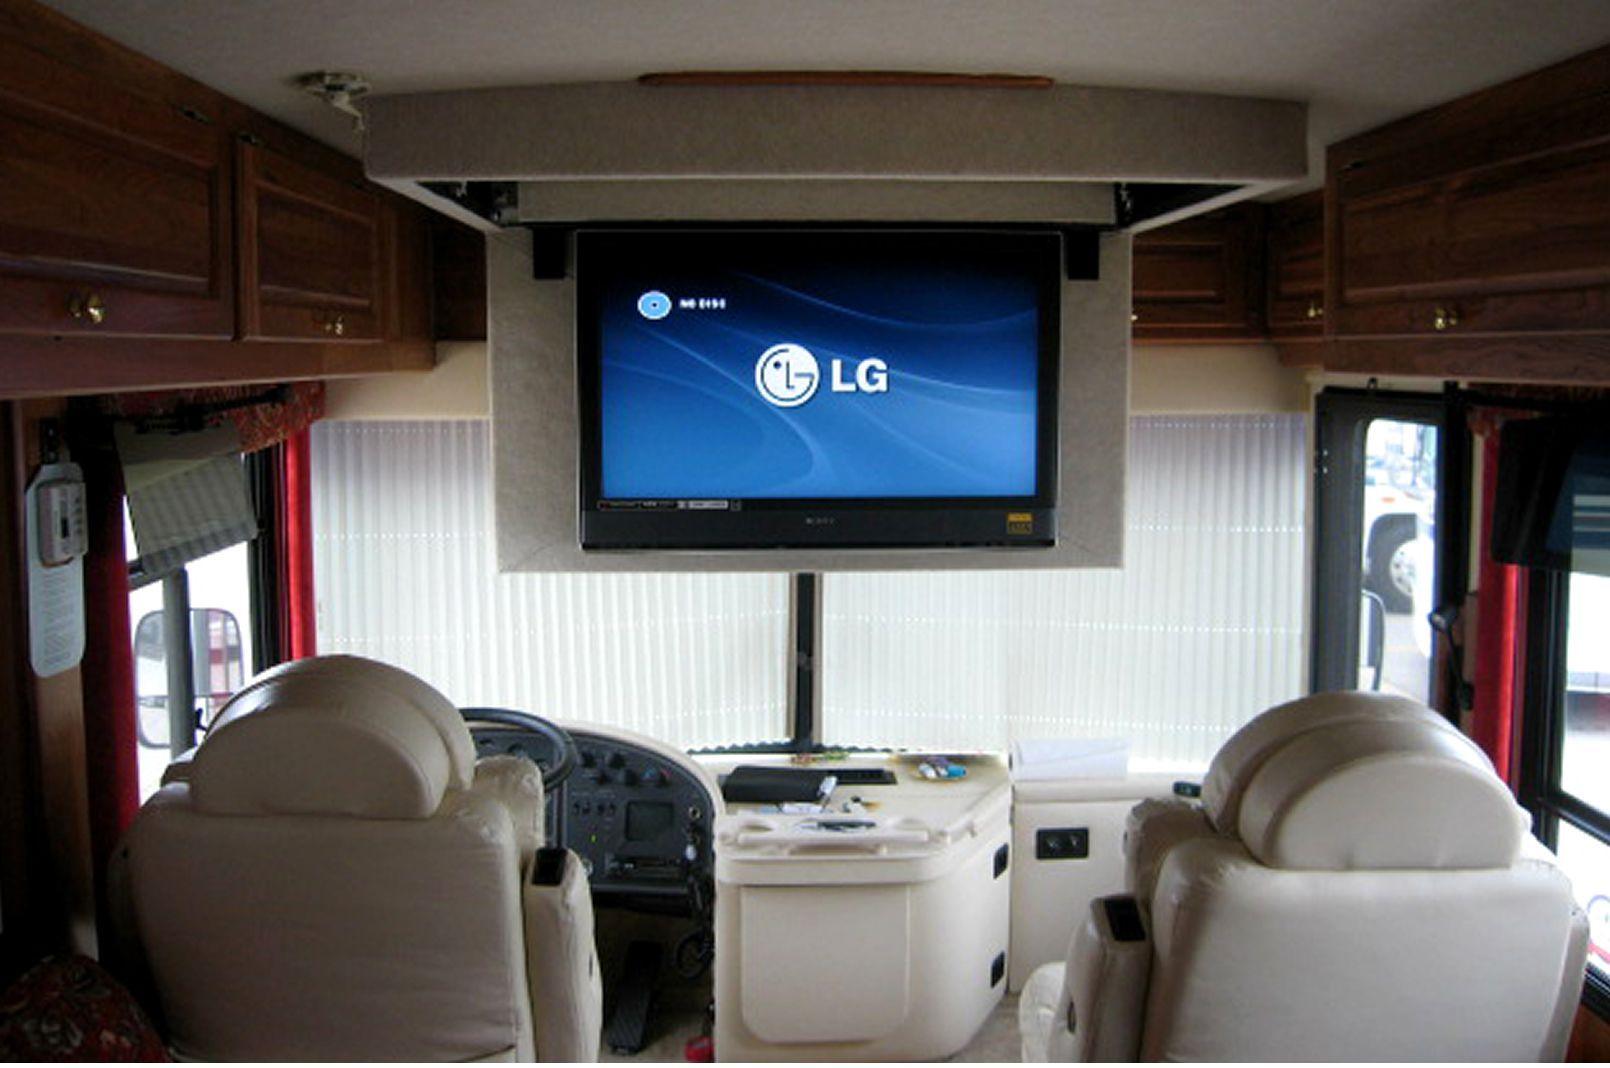 Motorhome Interior Remodel Google Search But I Would Flip So It Hangs Down In Back Of Camper If Possible But Dont Think There Is Enouph Room Rv Tv Mount